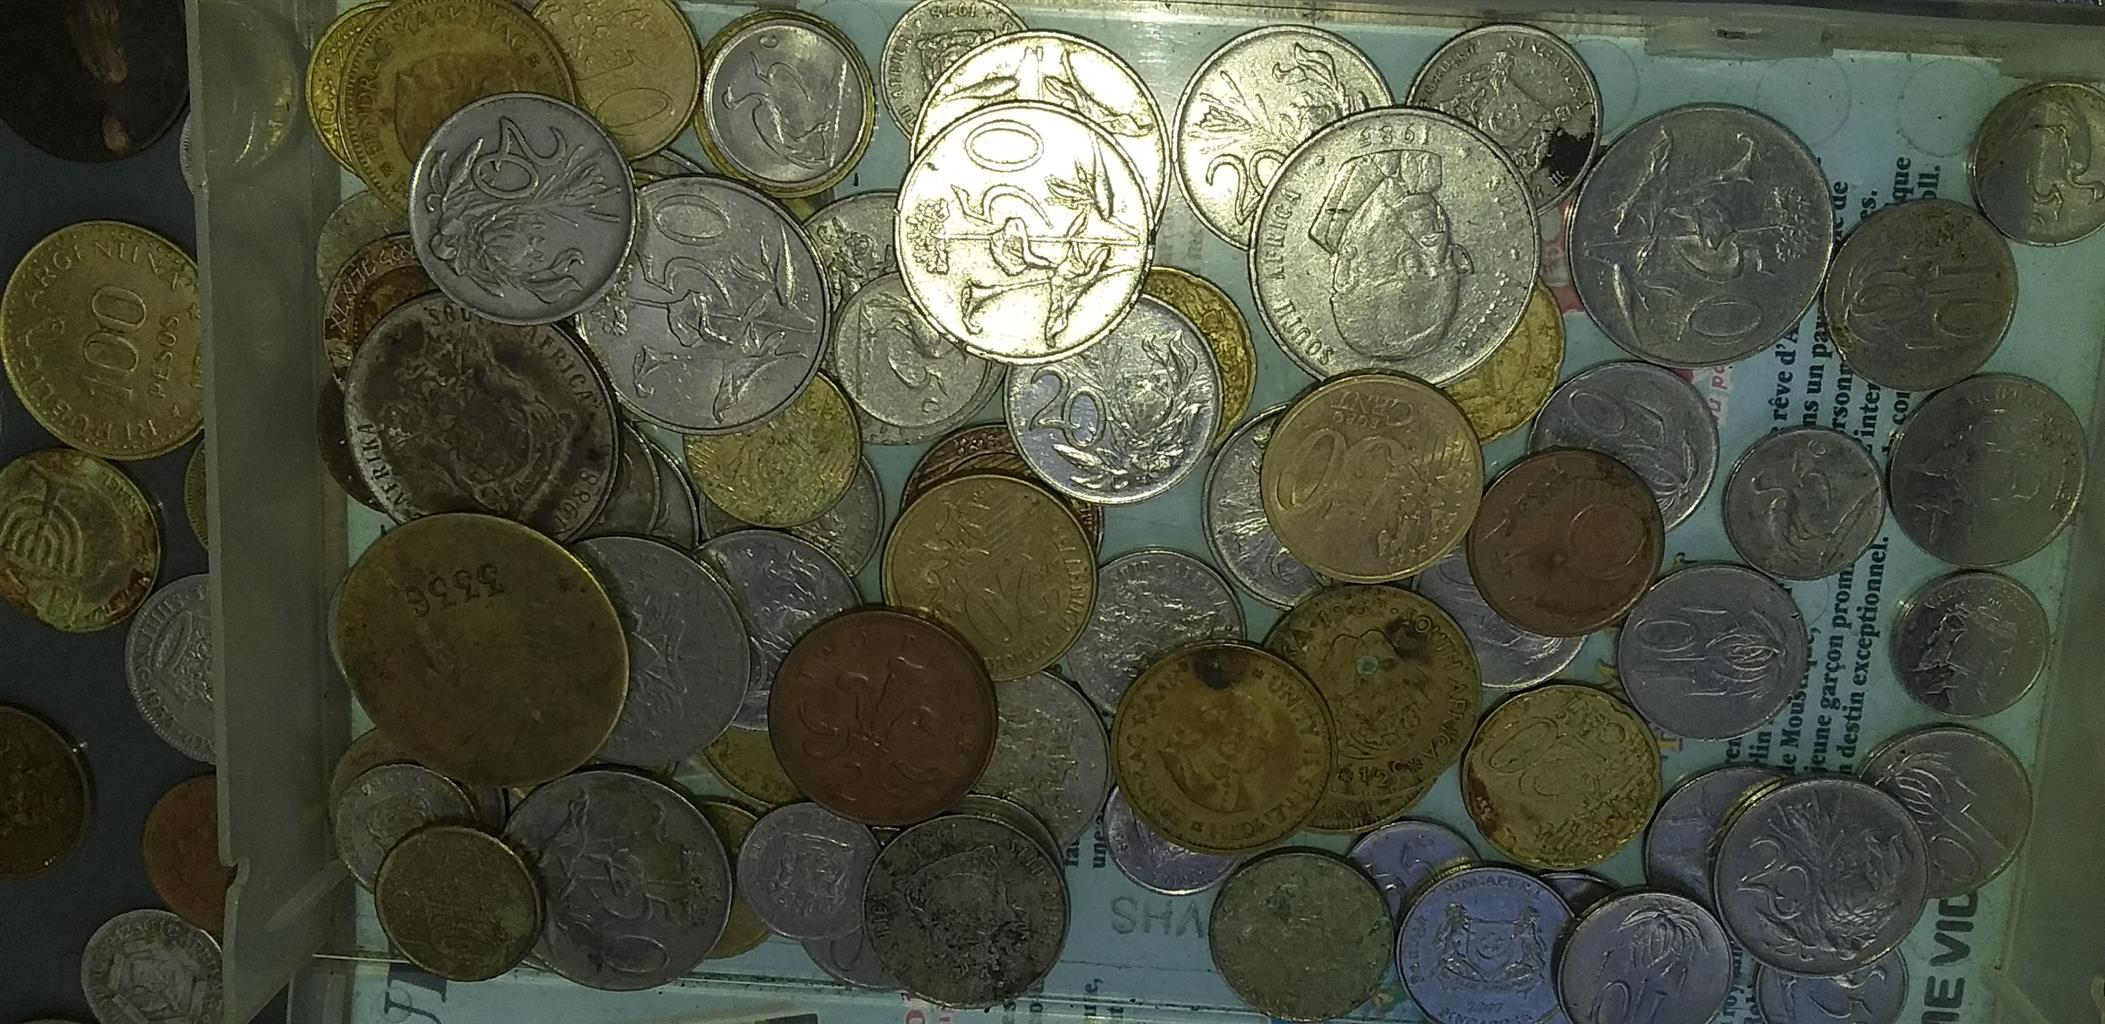 Antique  coins,medals and collectables